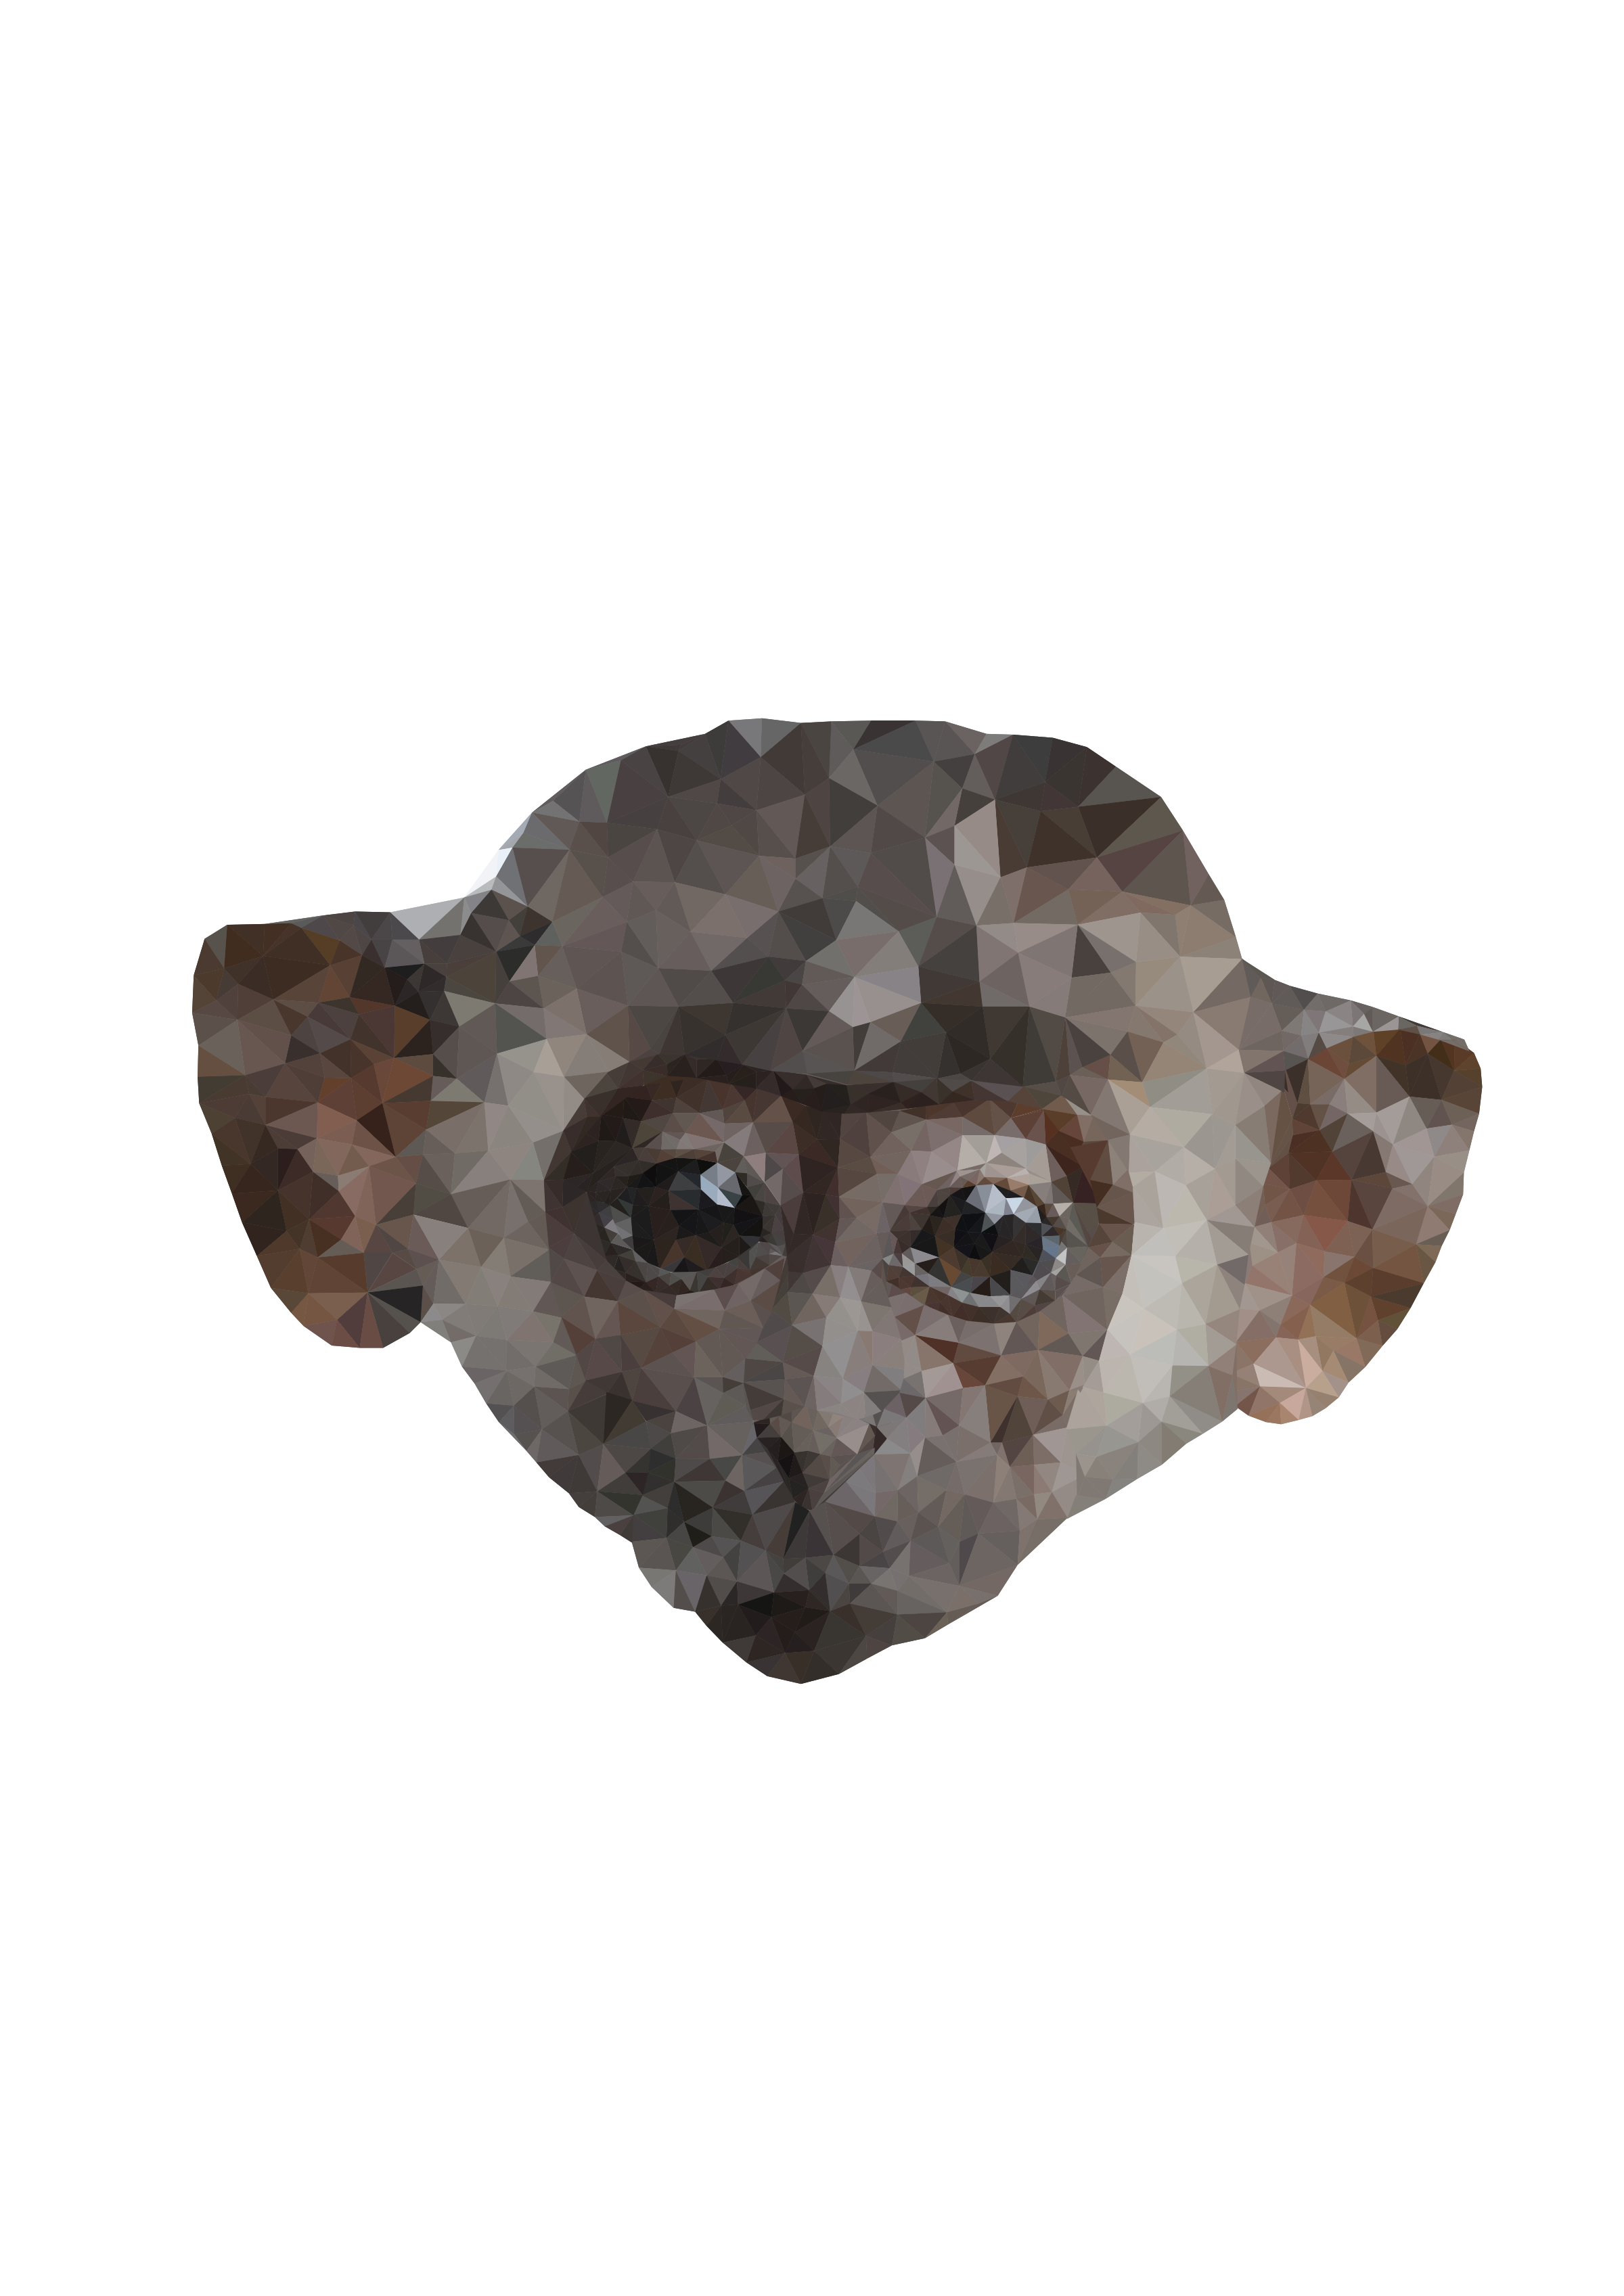 svg royalty free library Low poly image png. Ape clipart big monkey